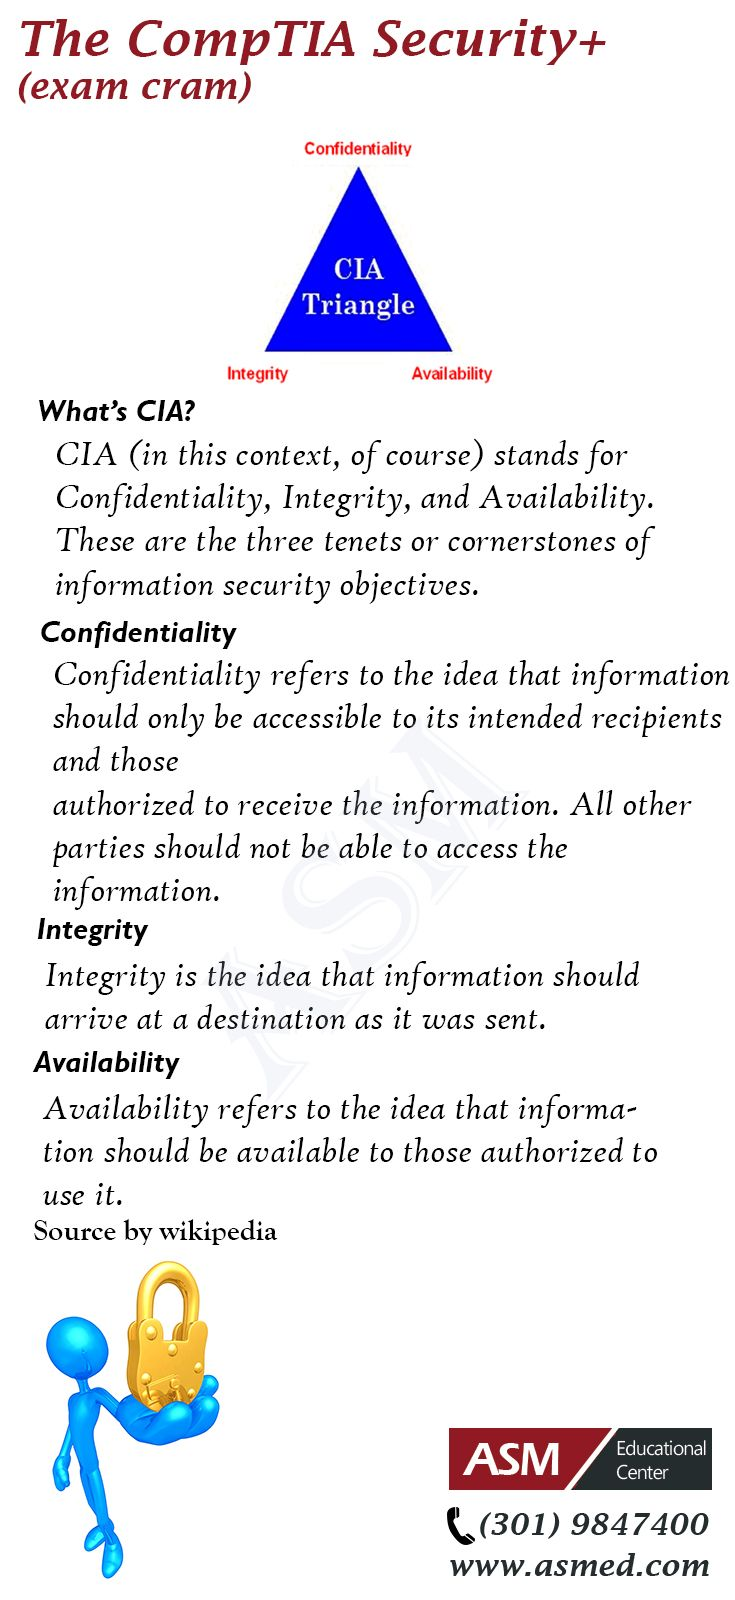 Comptia security whats cia for more information to get asm educational center provides network certification comptia a certification mcsa certification ccna and security certification in washington dc 1betcityfo Choice Image